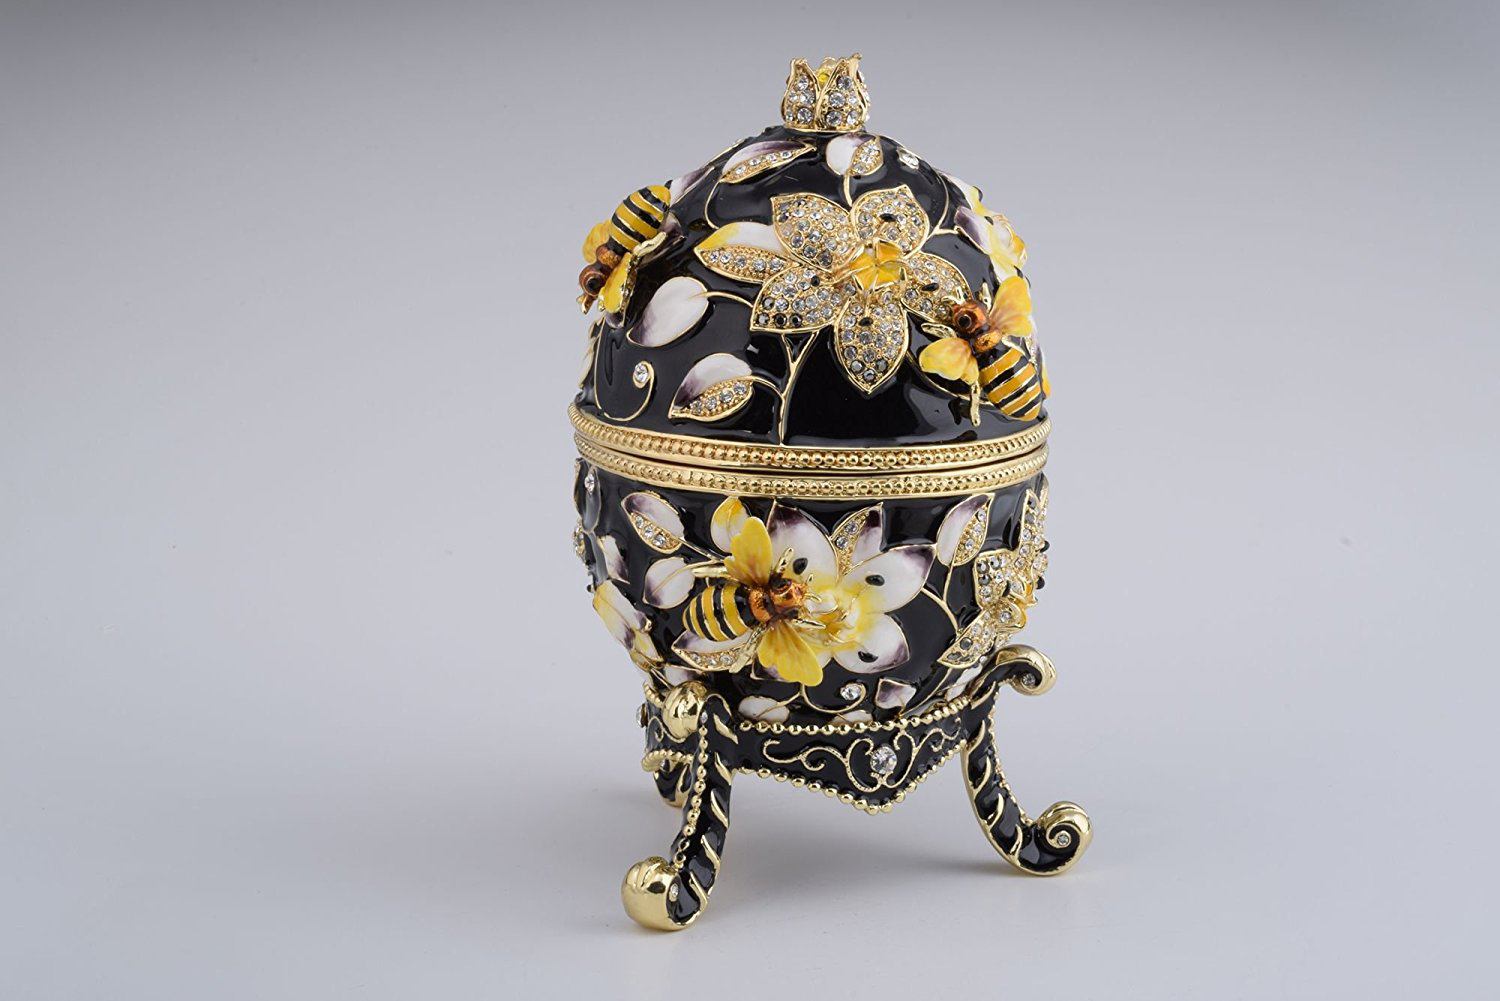 Beautiful Black Floral Bee Themed Gold Covered Faberge Egg Jewelry Box